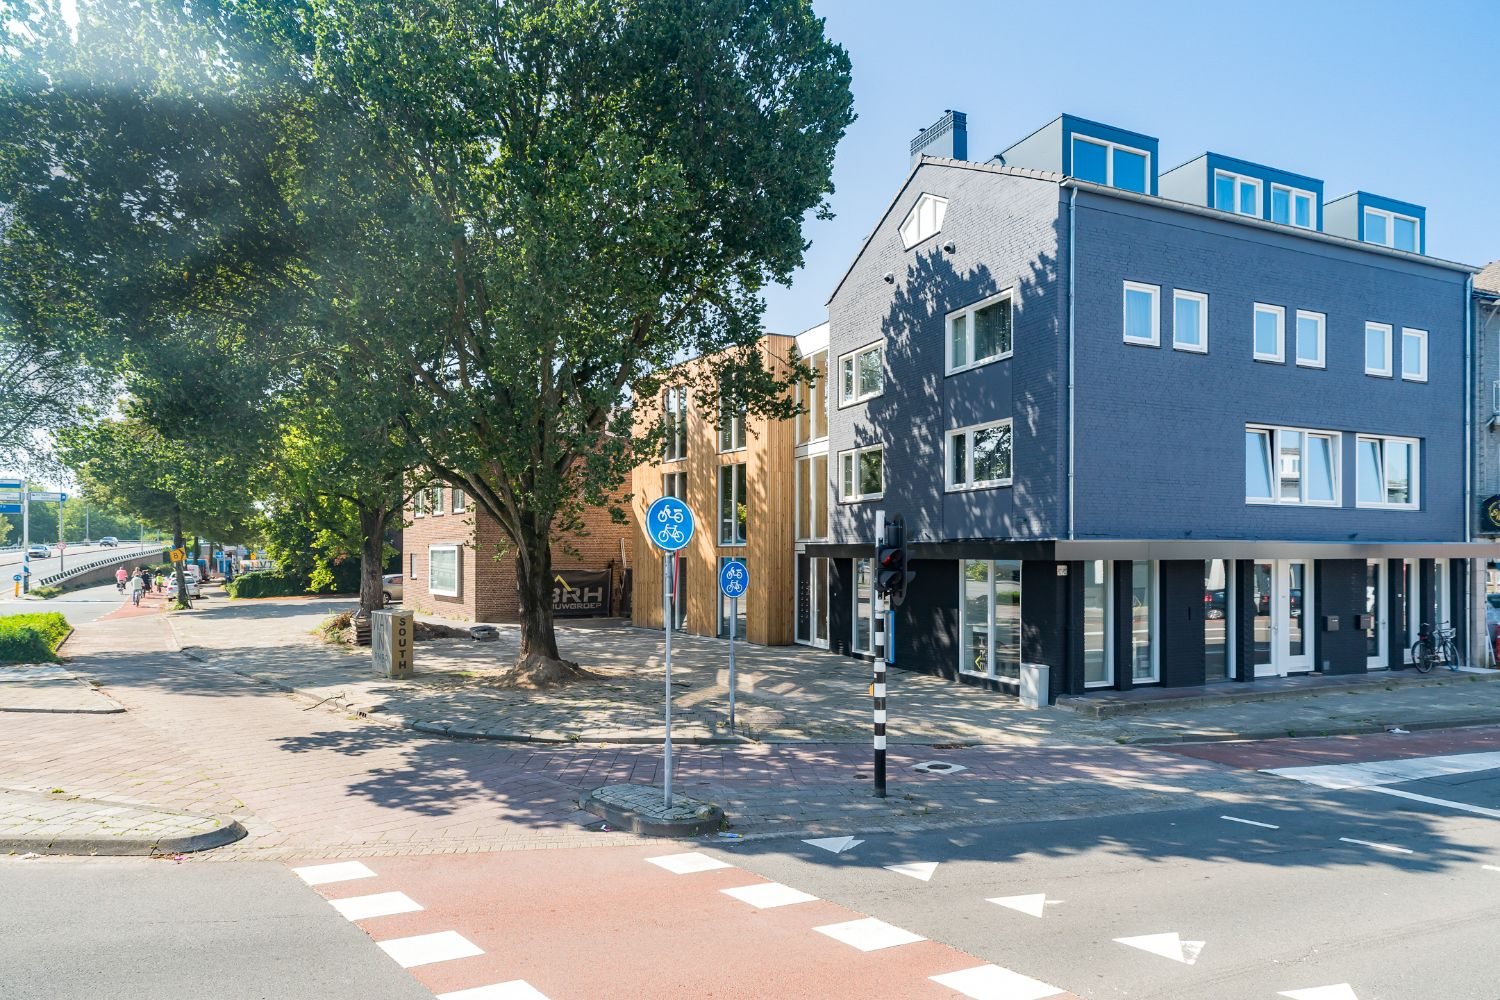 exterior building The Bakery in Eindhoven